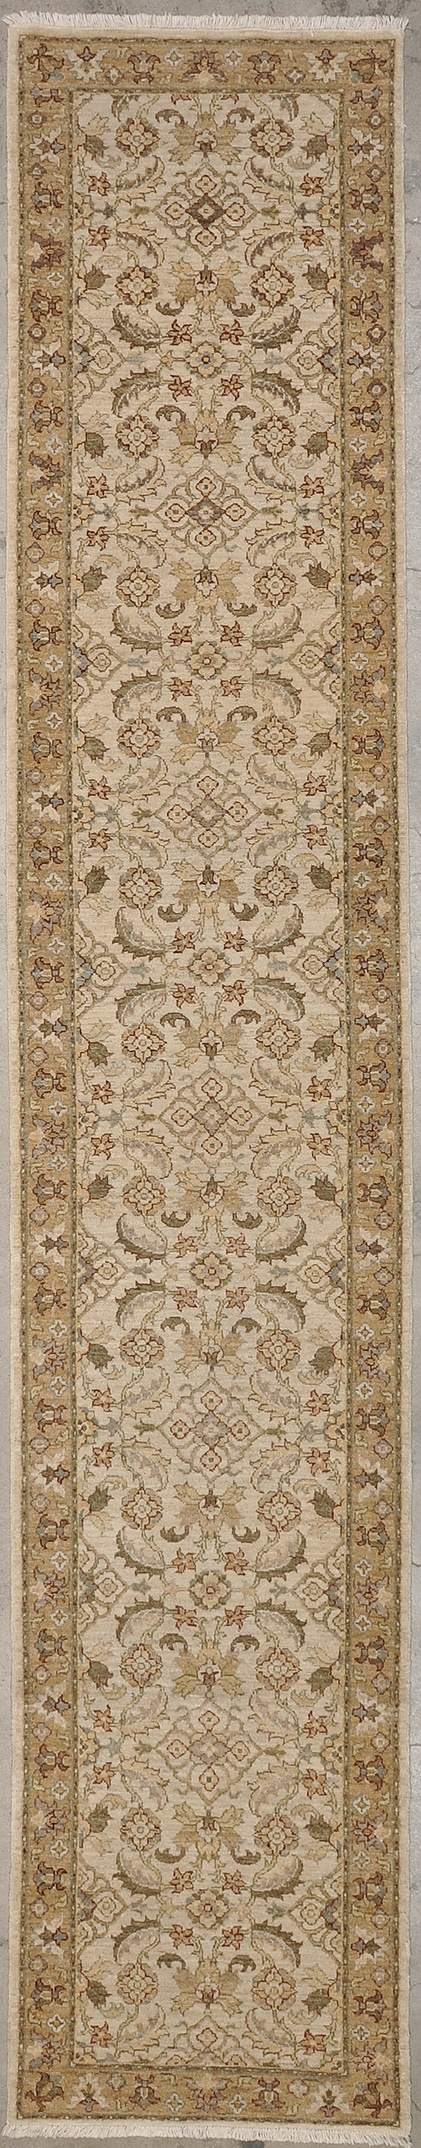 Pakistan Oushak Runner rugs and more oriental carpet 33640-